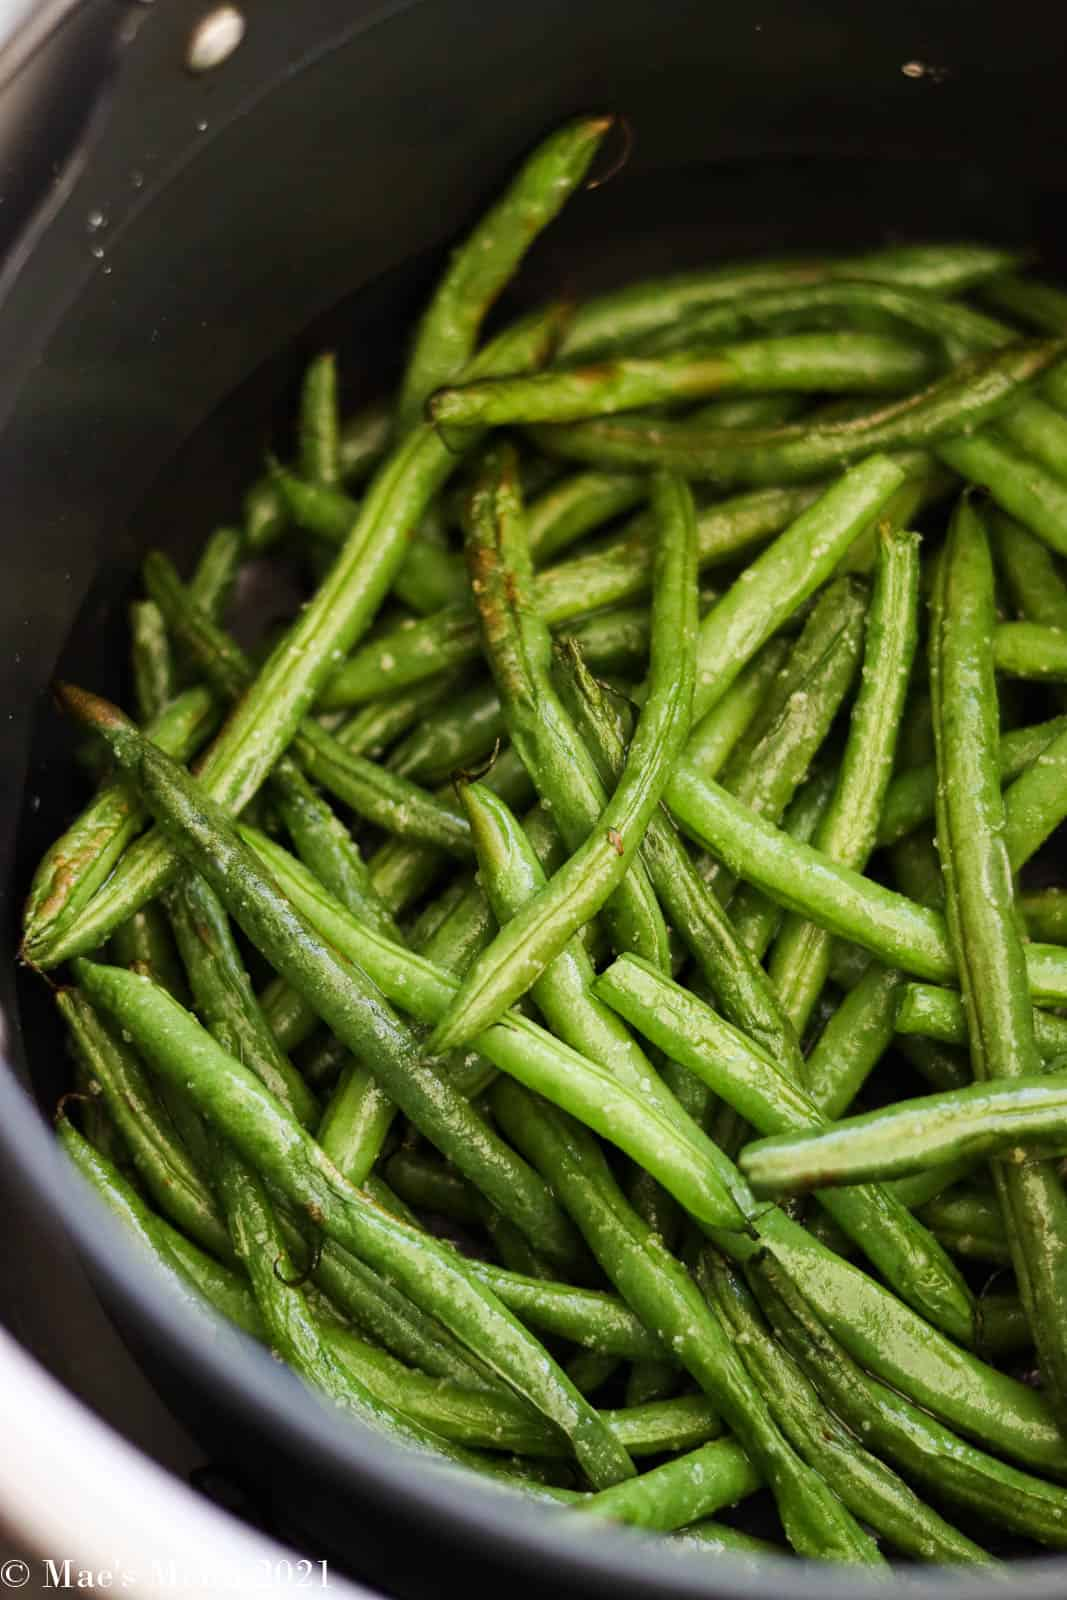 The air fryer green beans partially fried